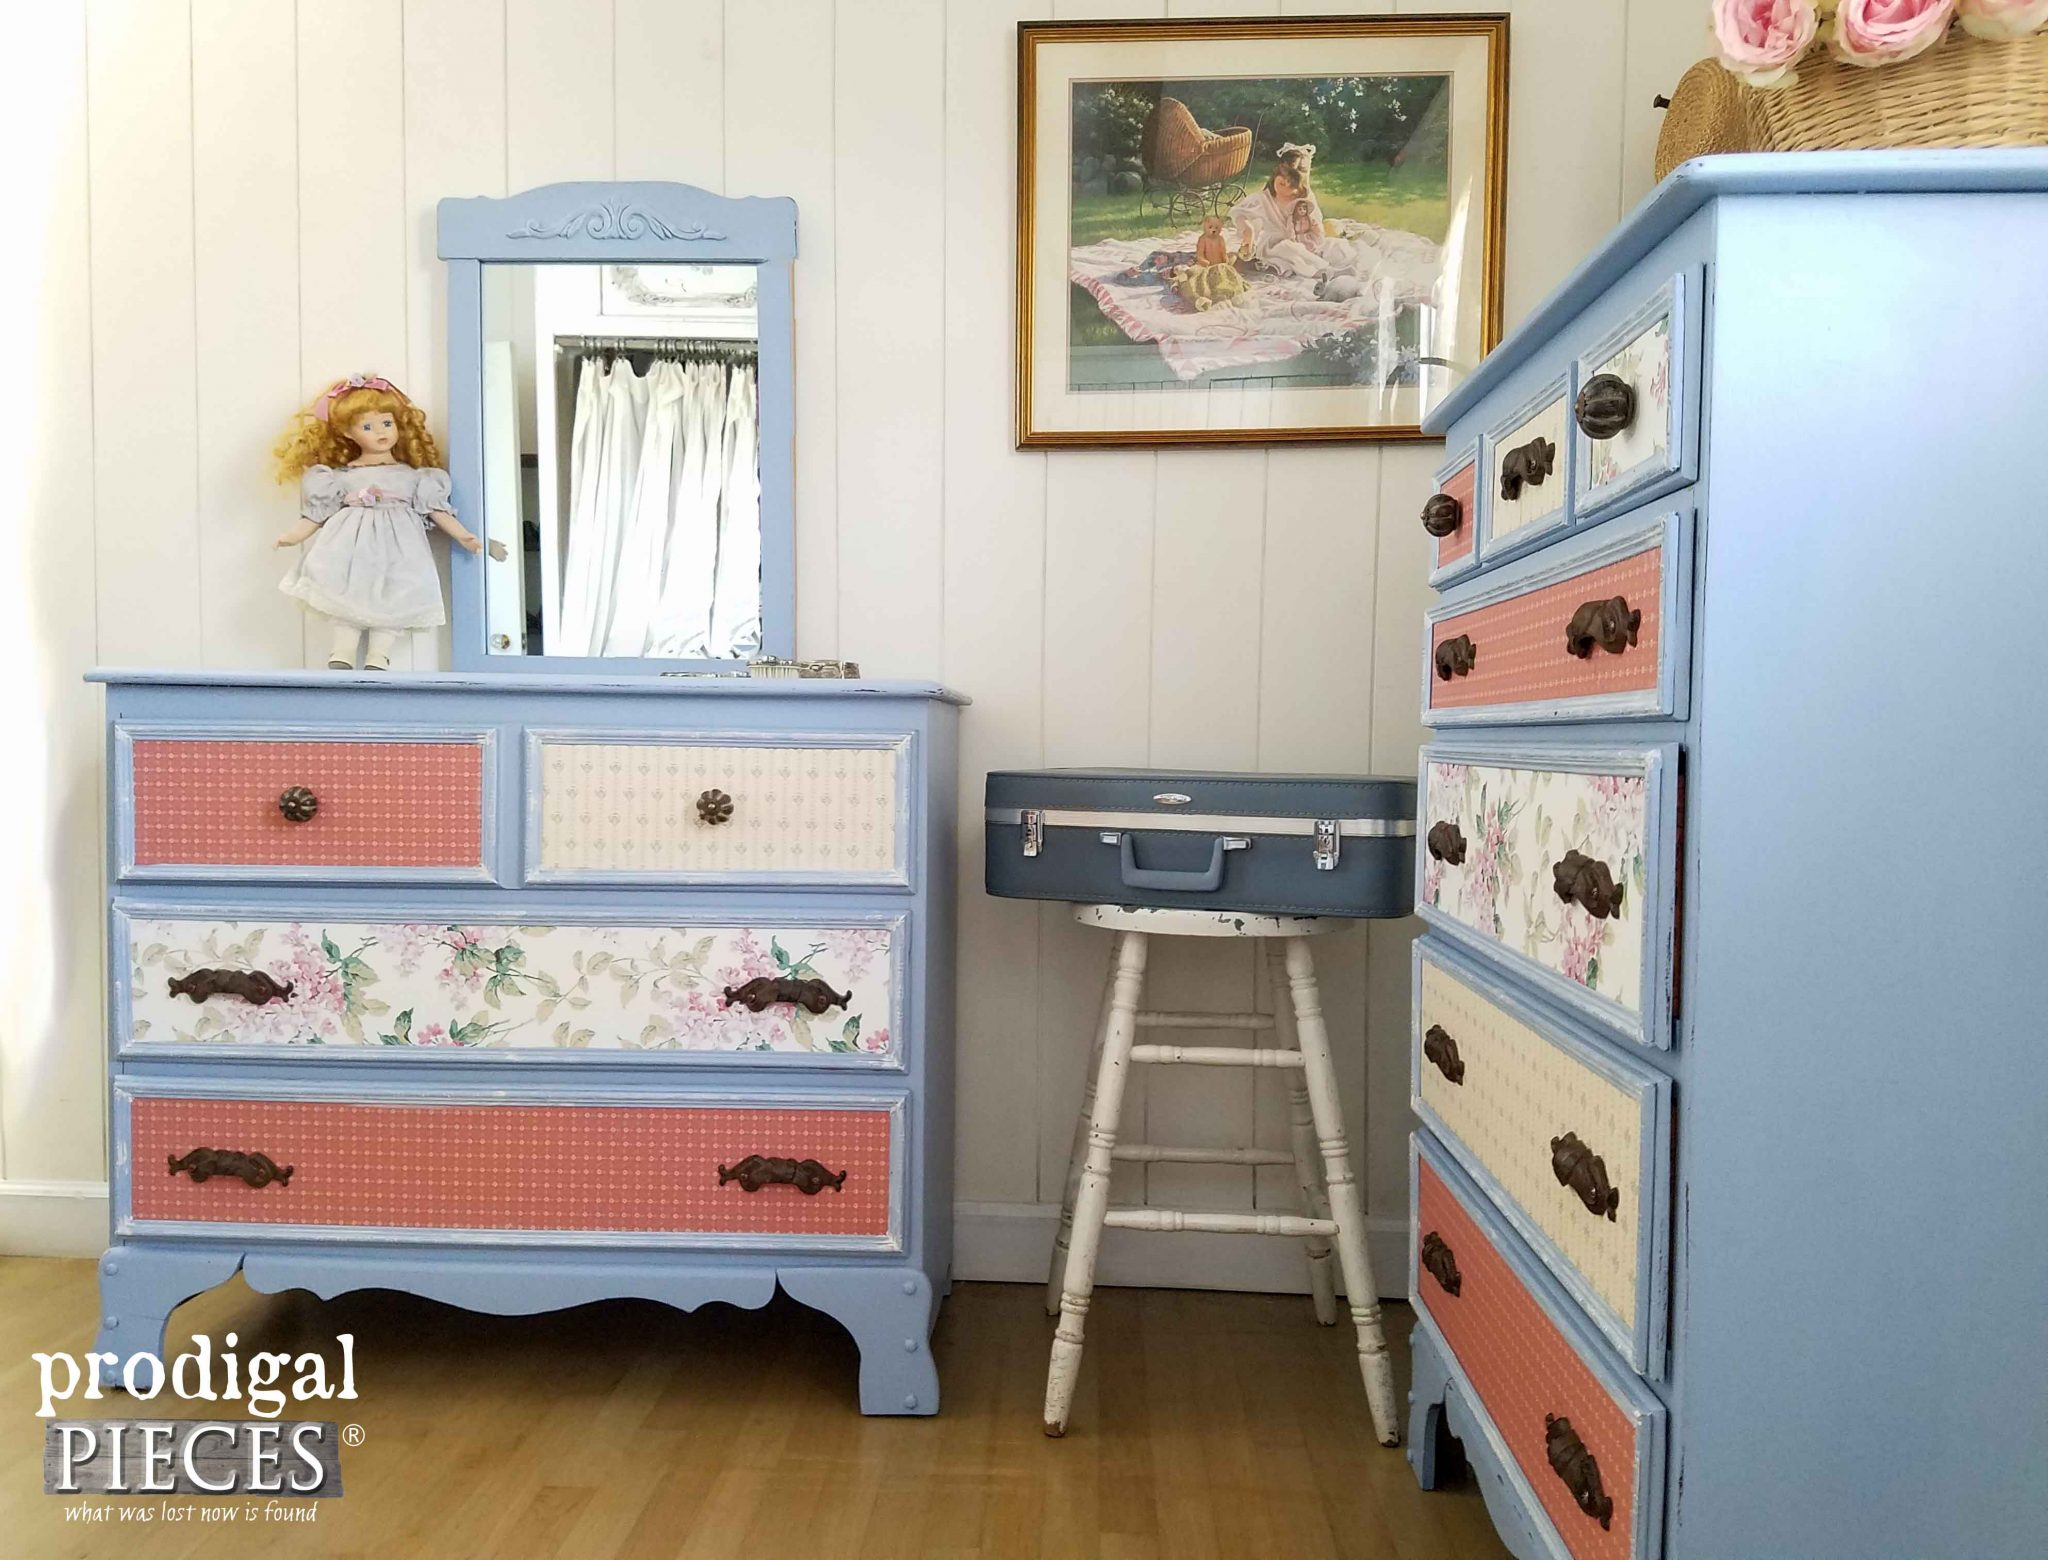 Cottage Chic Style Girl's Bedroom Set by Prodigal Pieces | prodigalpieces.com